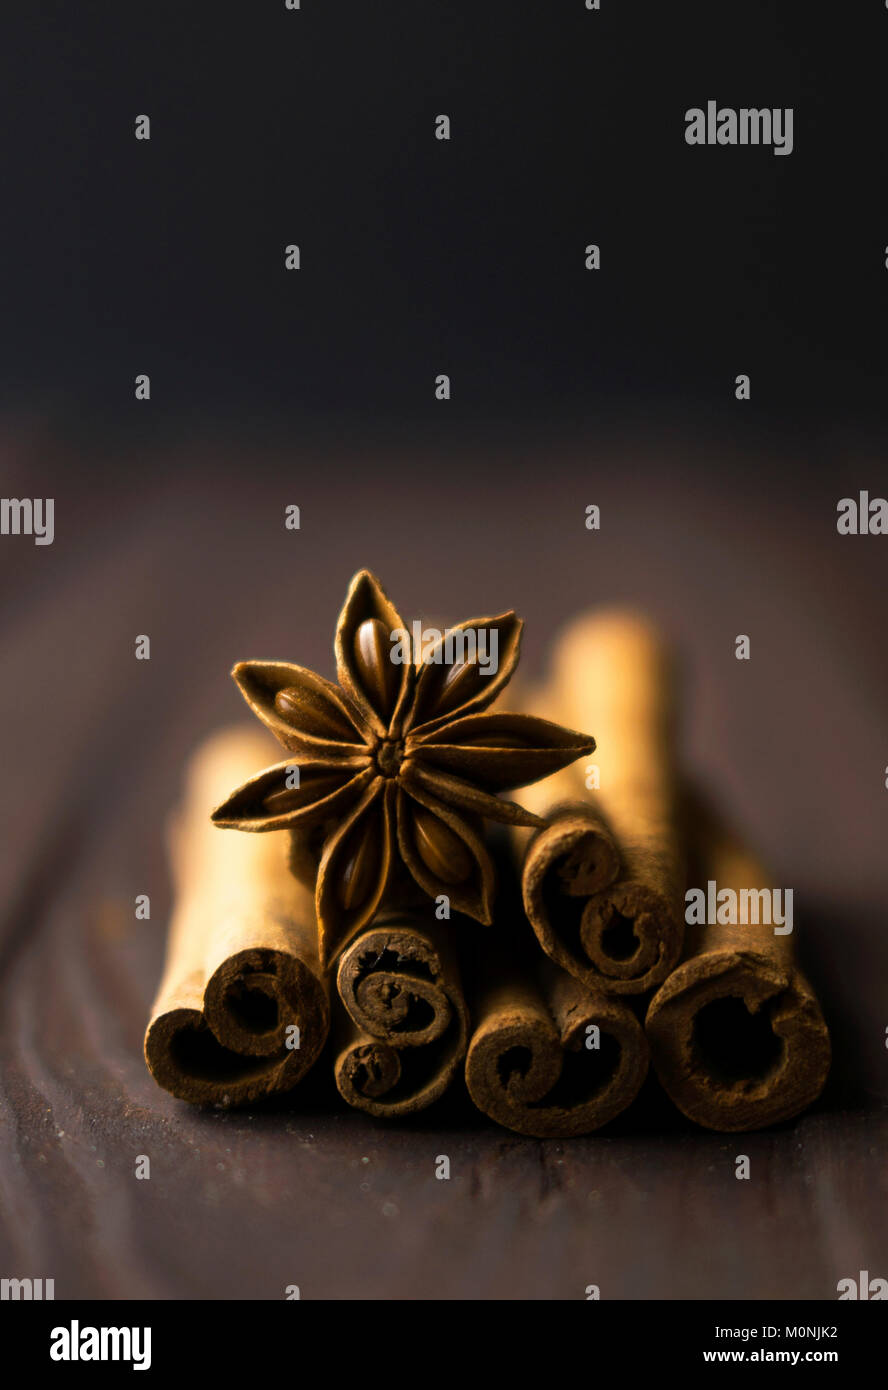 Creative concept photo of cinnamon sticks on wooden brown background. - Stock Image